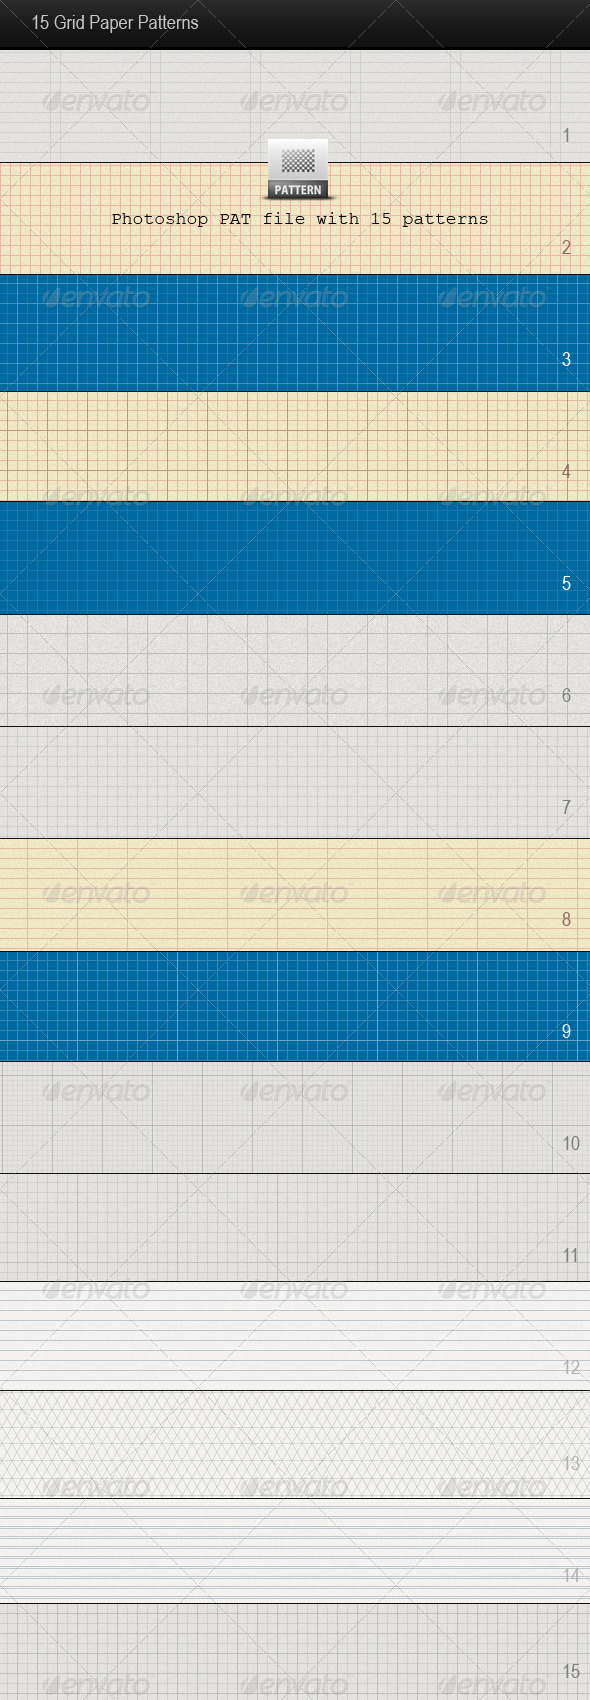 GraphicRiver 15 Grid Paper Patterns 140557